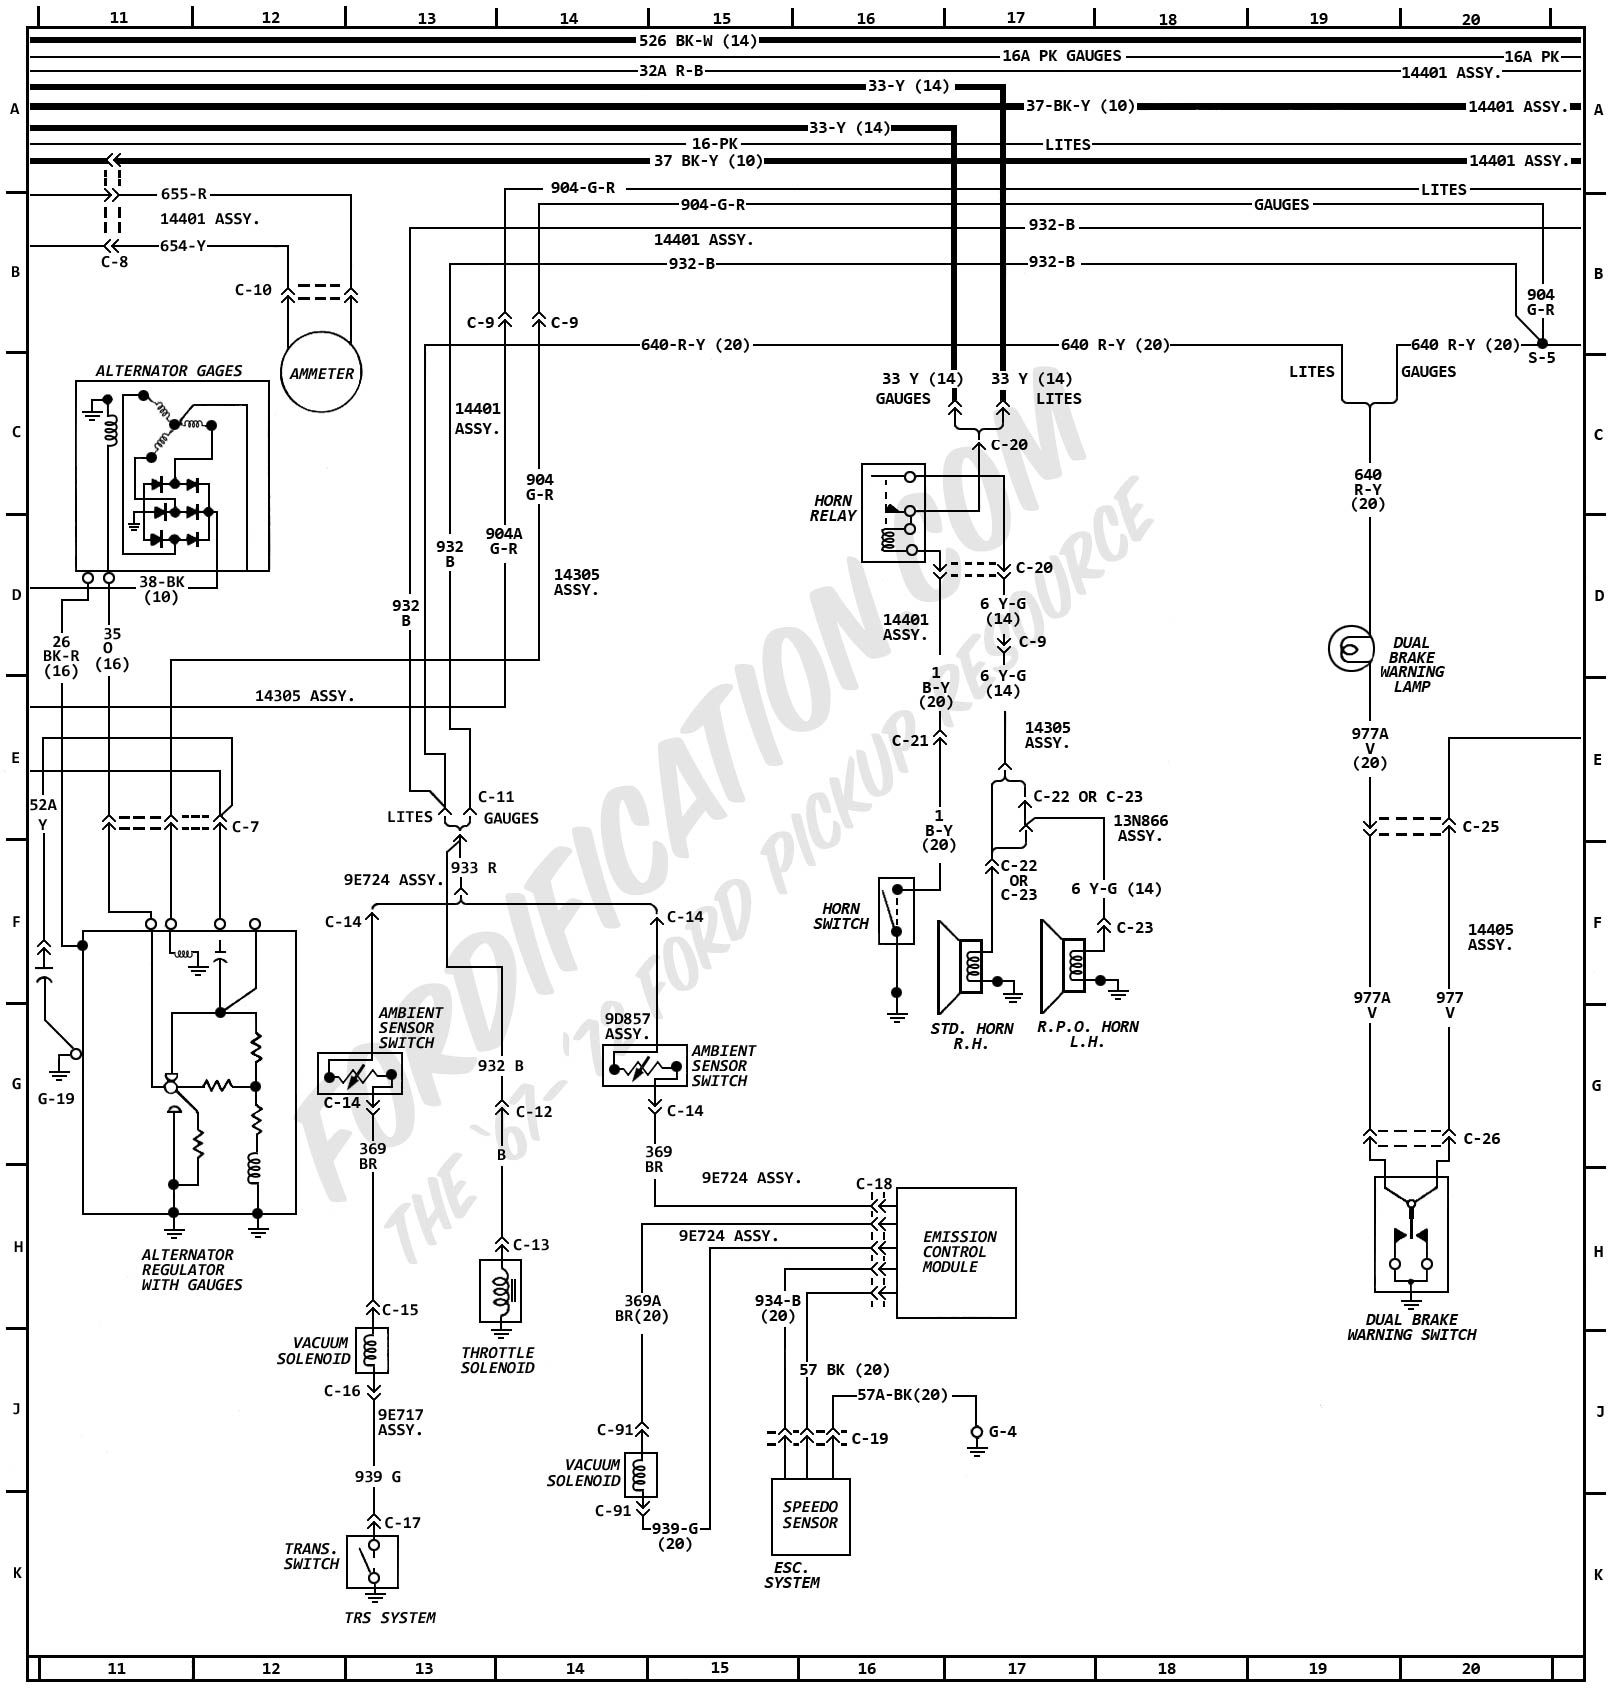 1972 Ford Turn Signal Switch Wiring Diagram Archive Of Automotive F100 Schematics Blog About Diagrams Rh Clares Driving Co Uk 1970